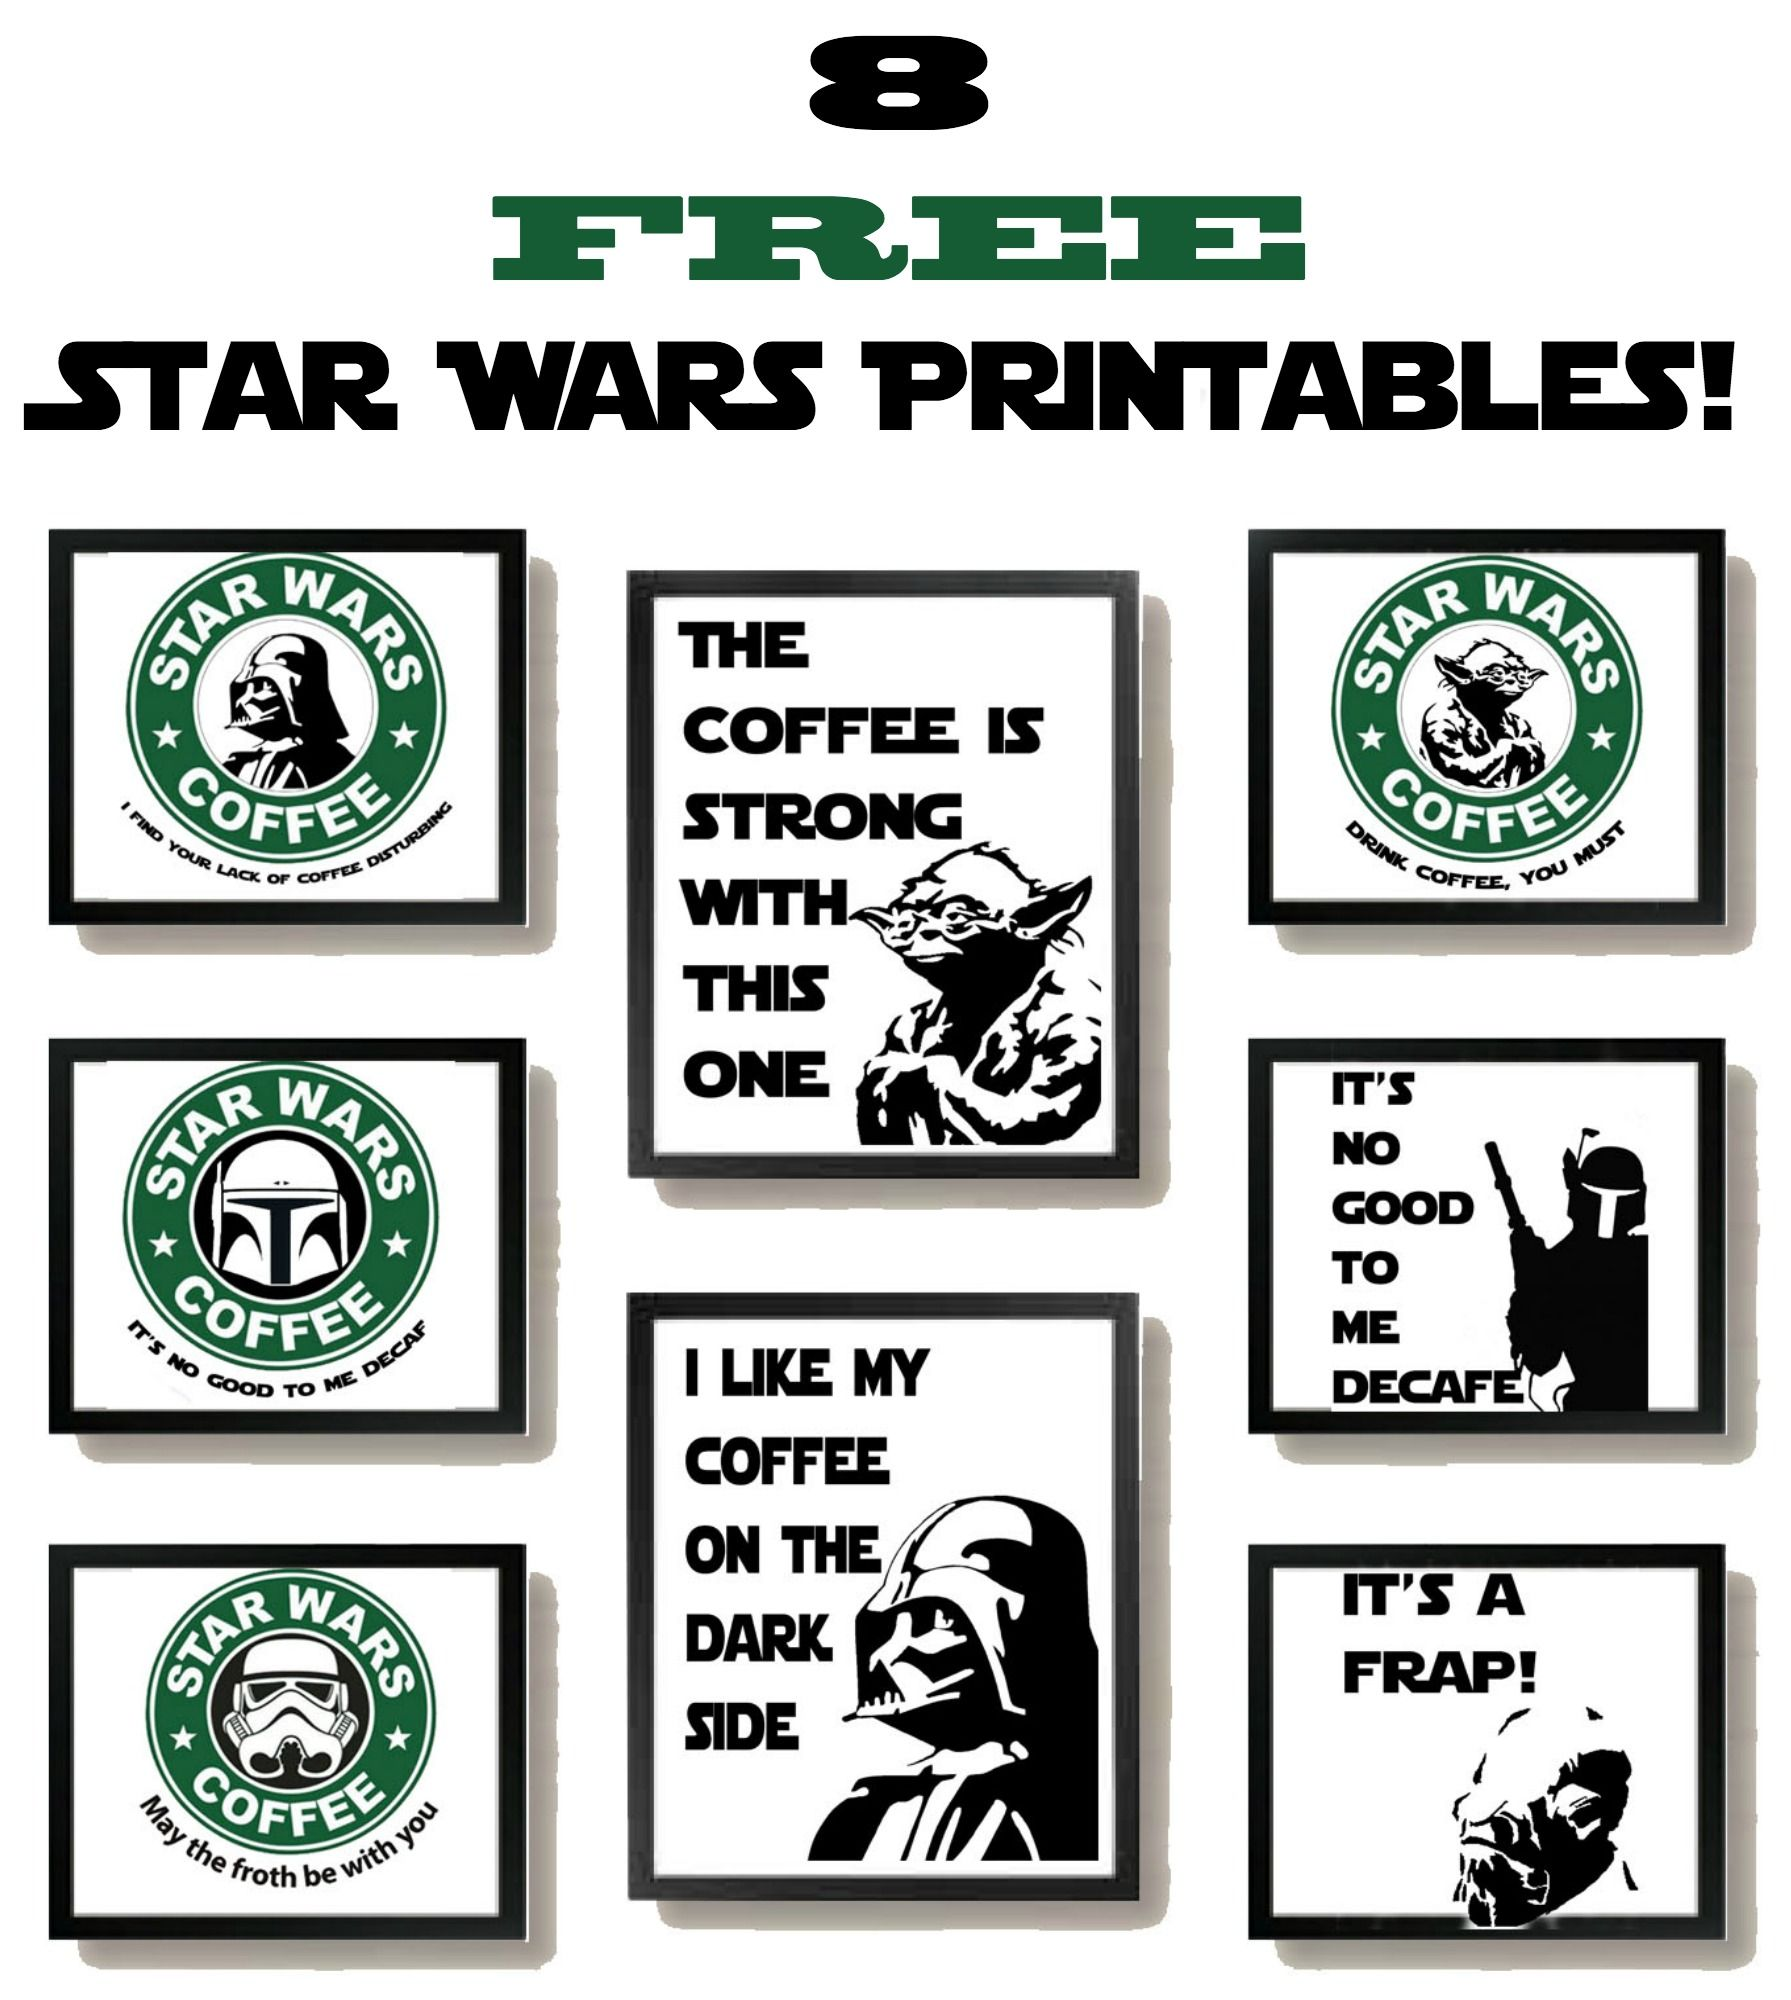 Plotterdatei Star Wars Free Star Wars Printables With A Coffee Theme What 39s New